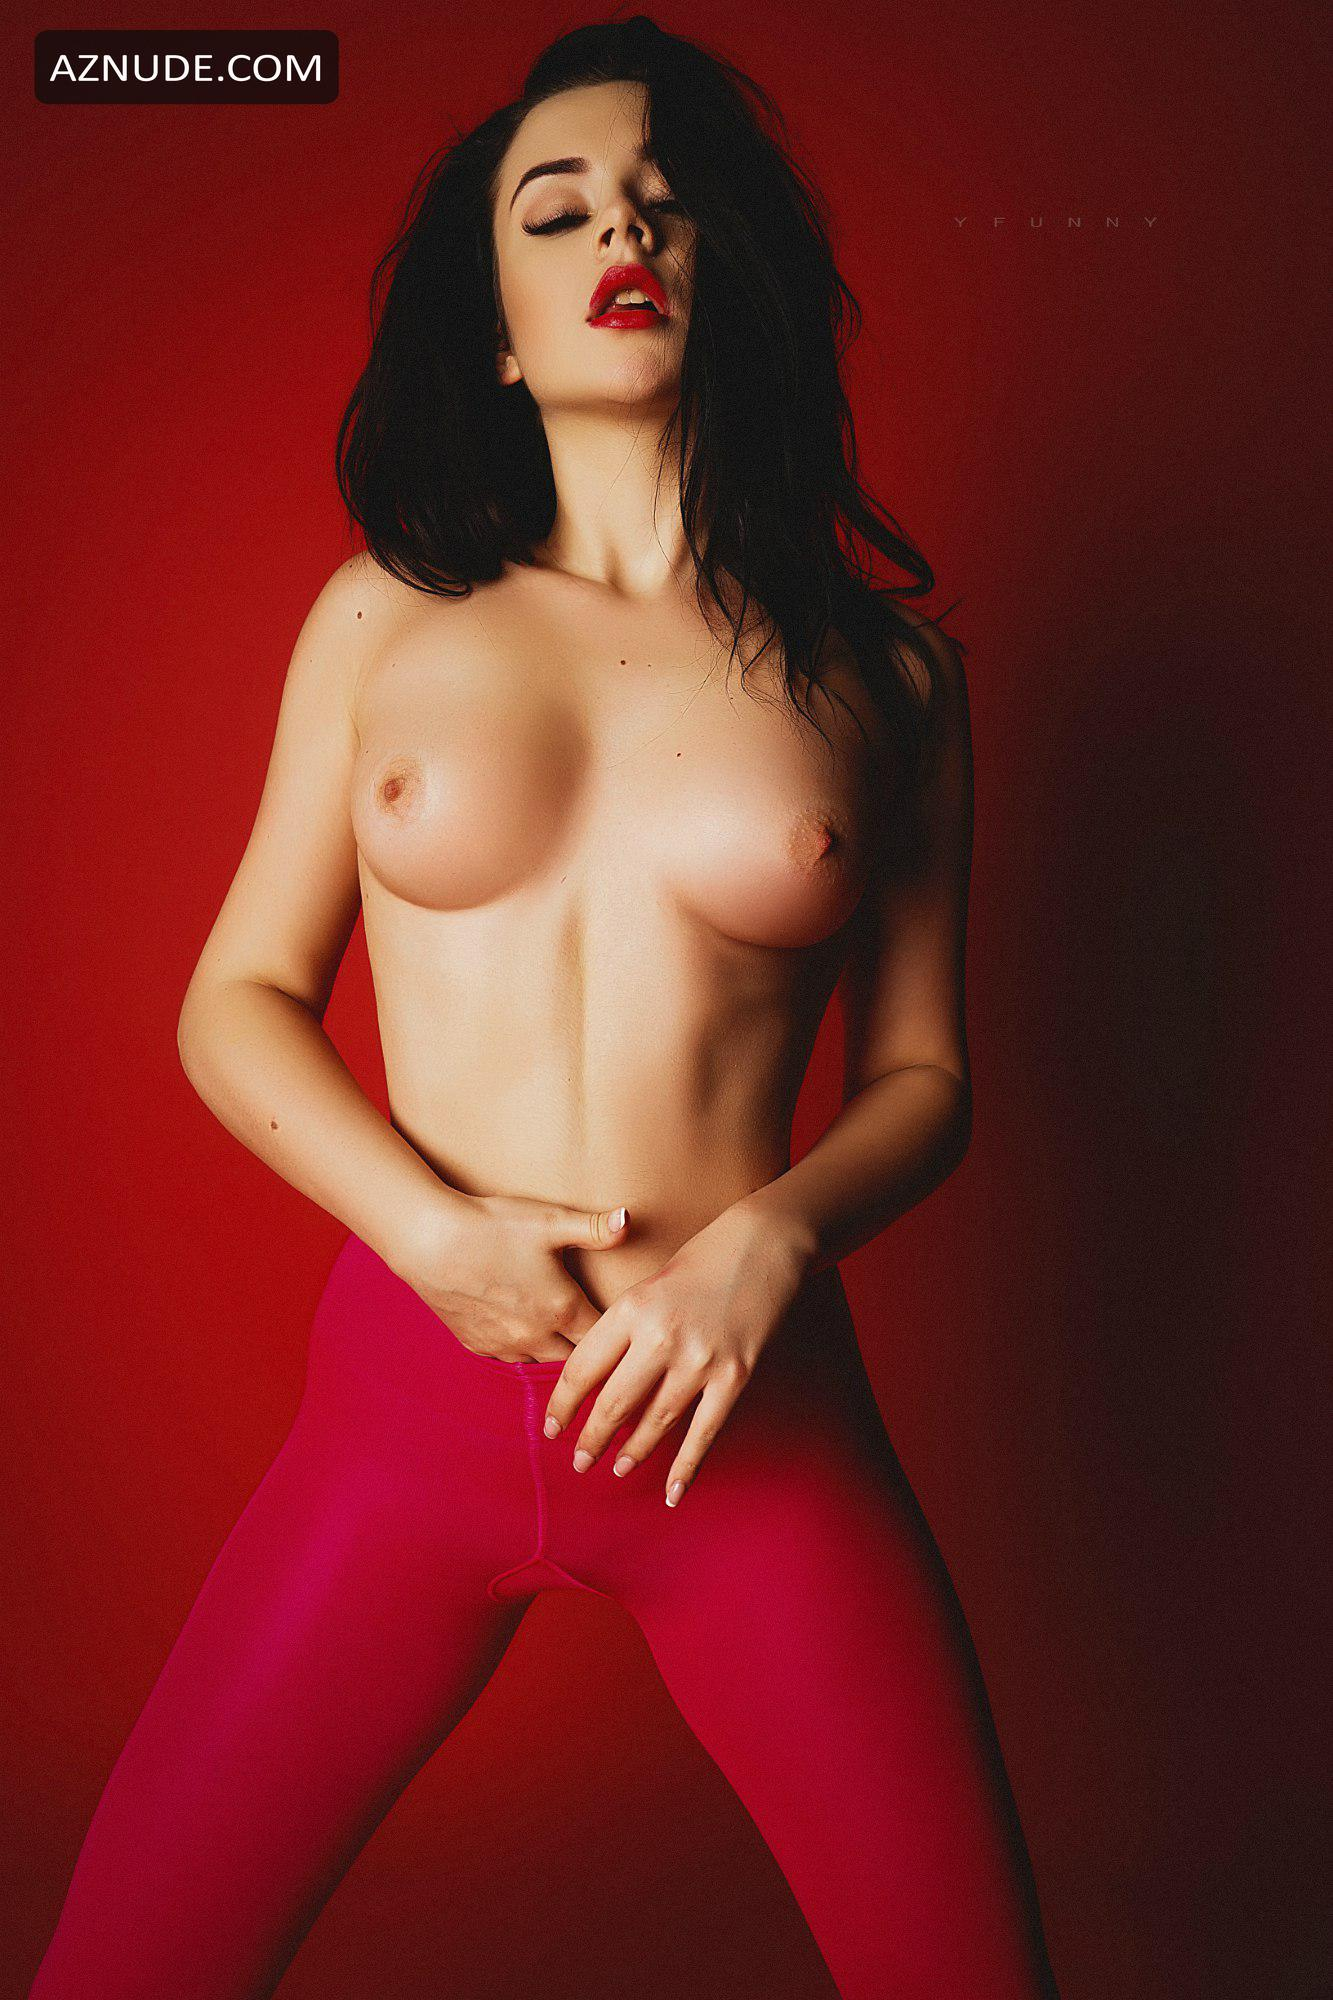 Communication on this topic: Lisa appleton sexy topless pics, daria-delicious-nude-and-27-photos/